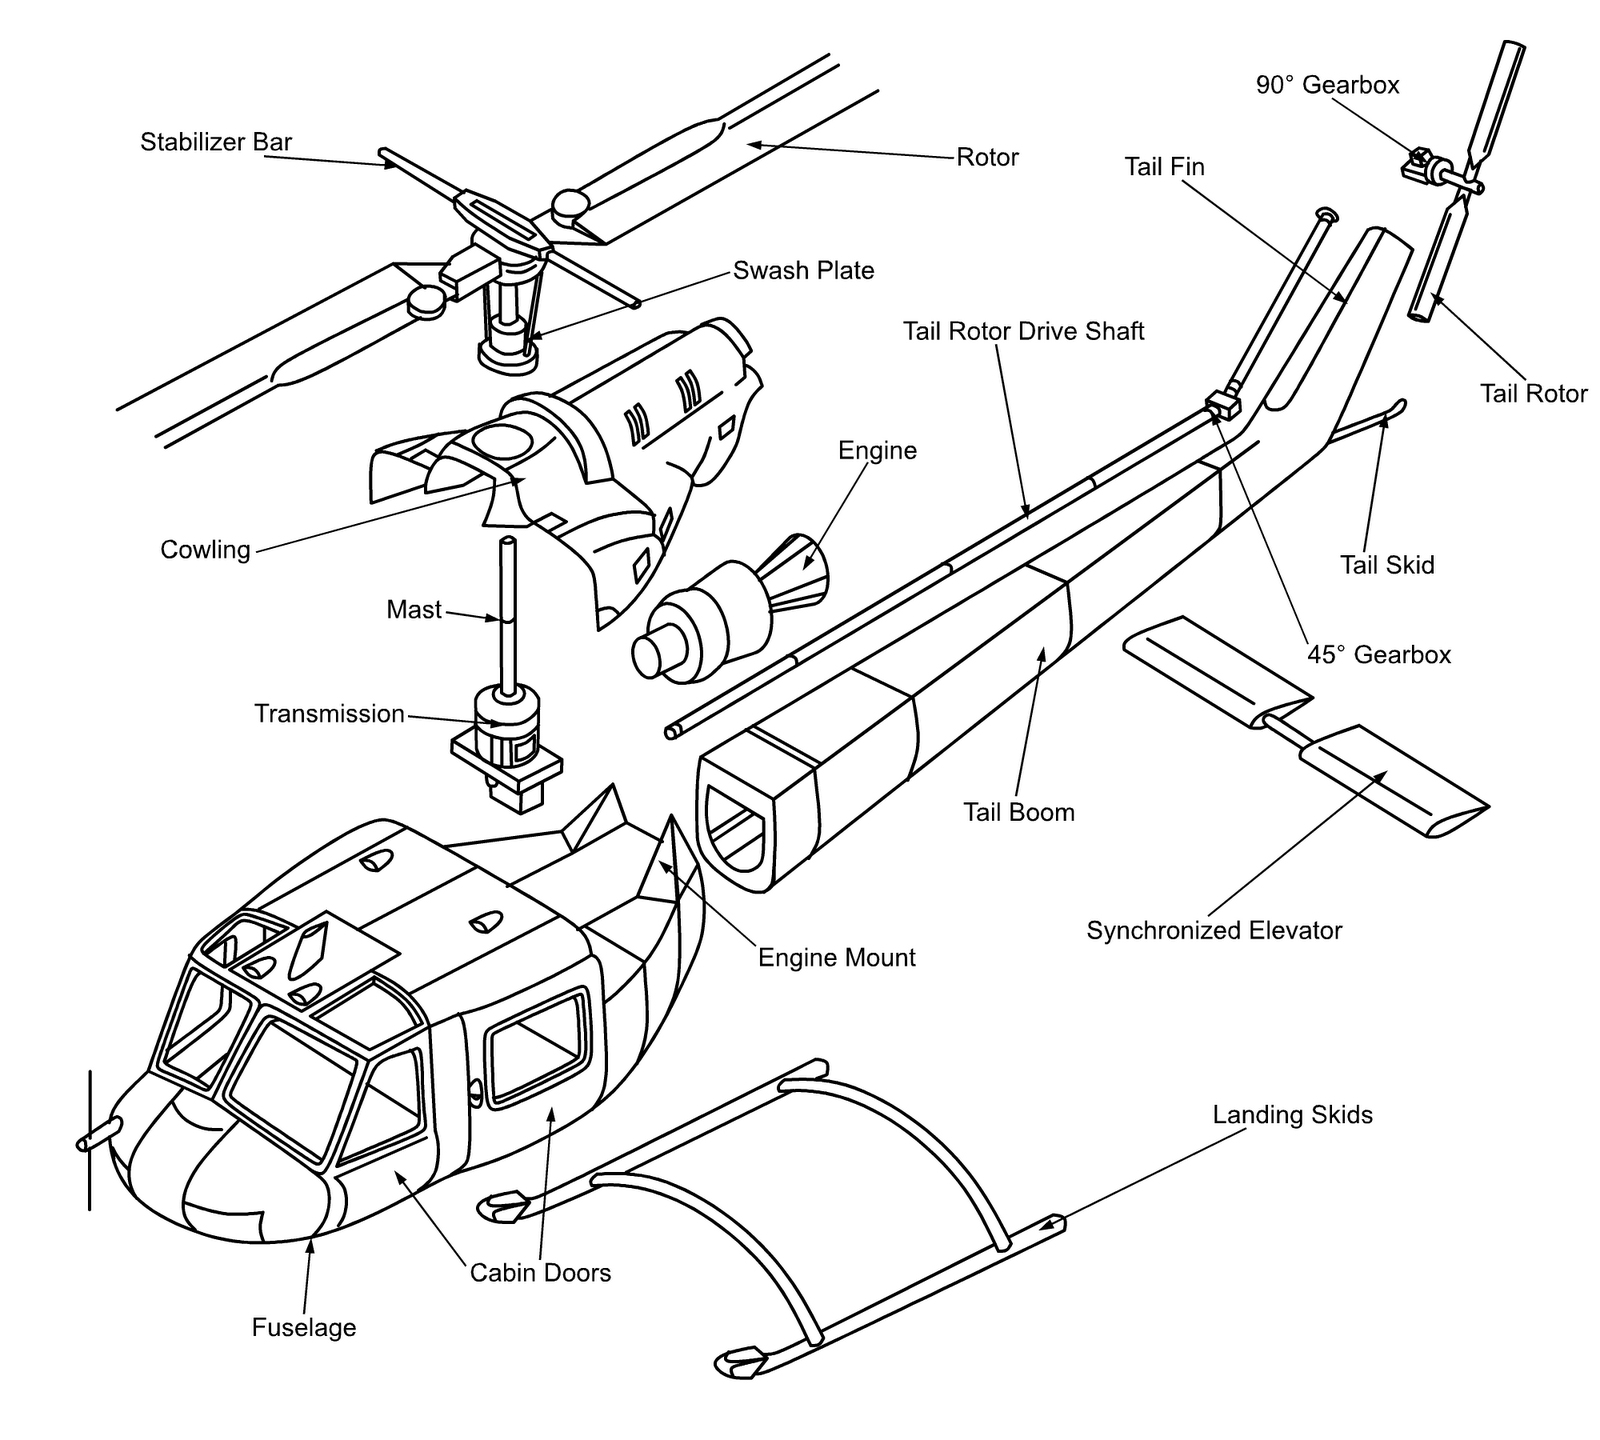 Helicopter anatomy - how a helicopter works